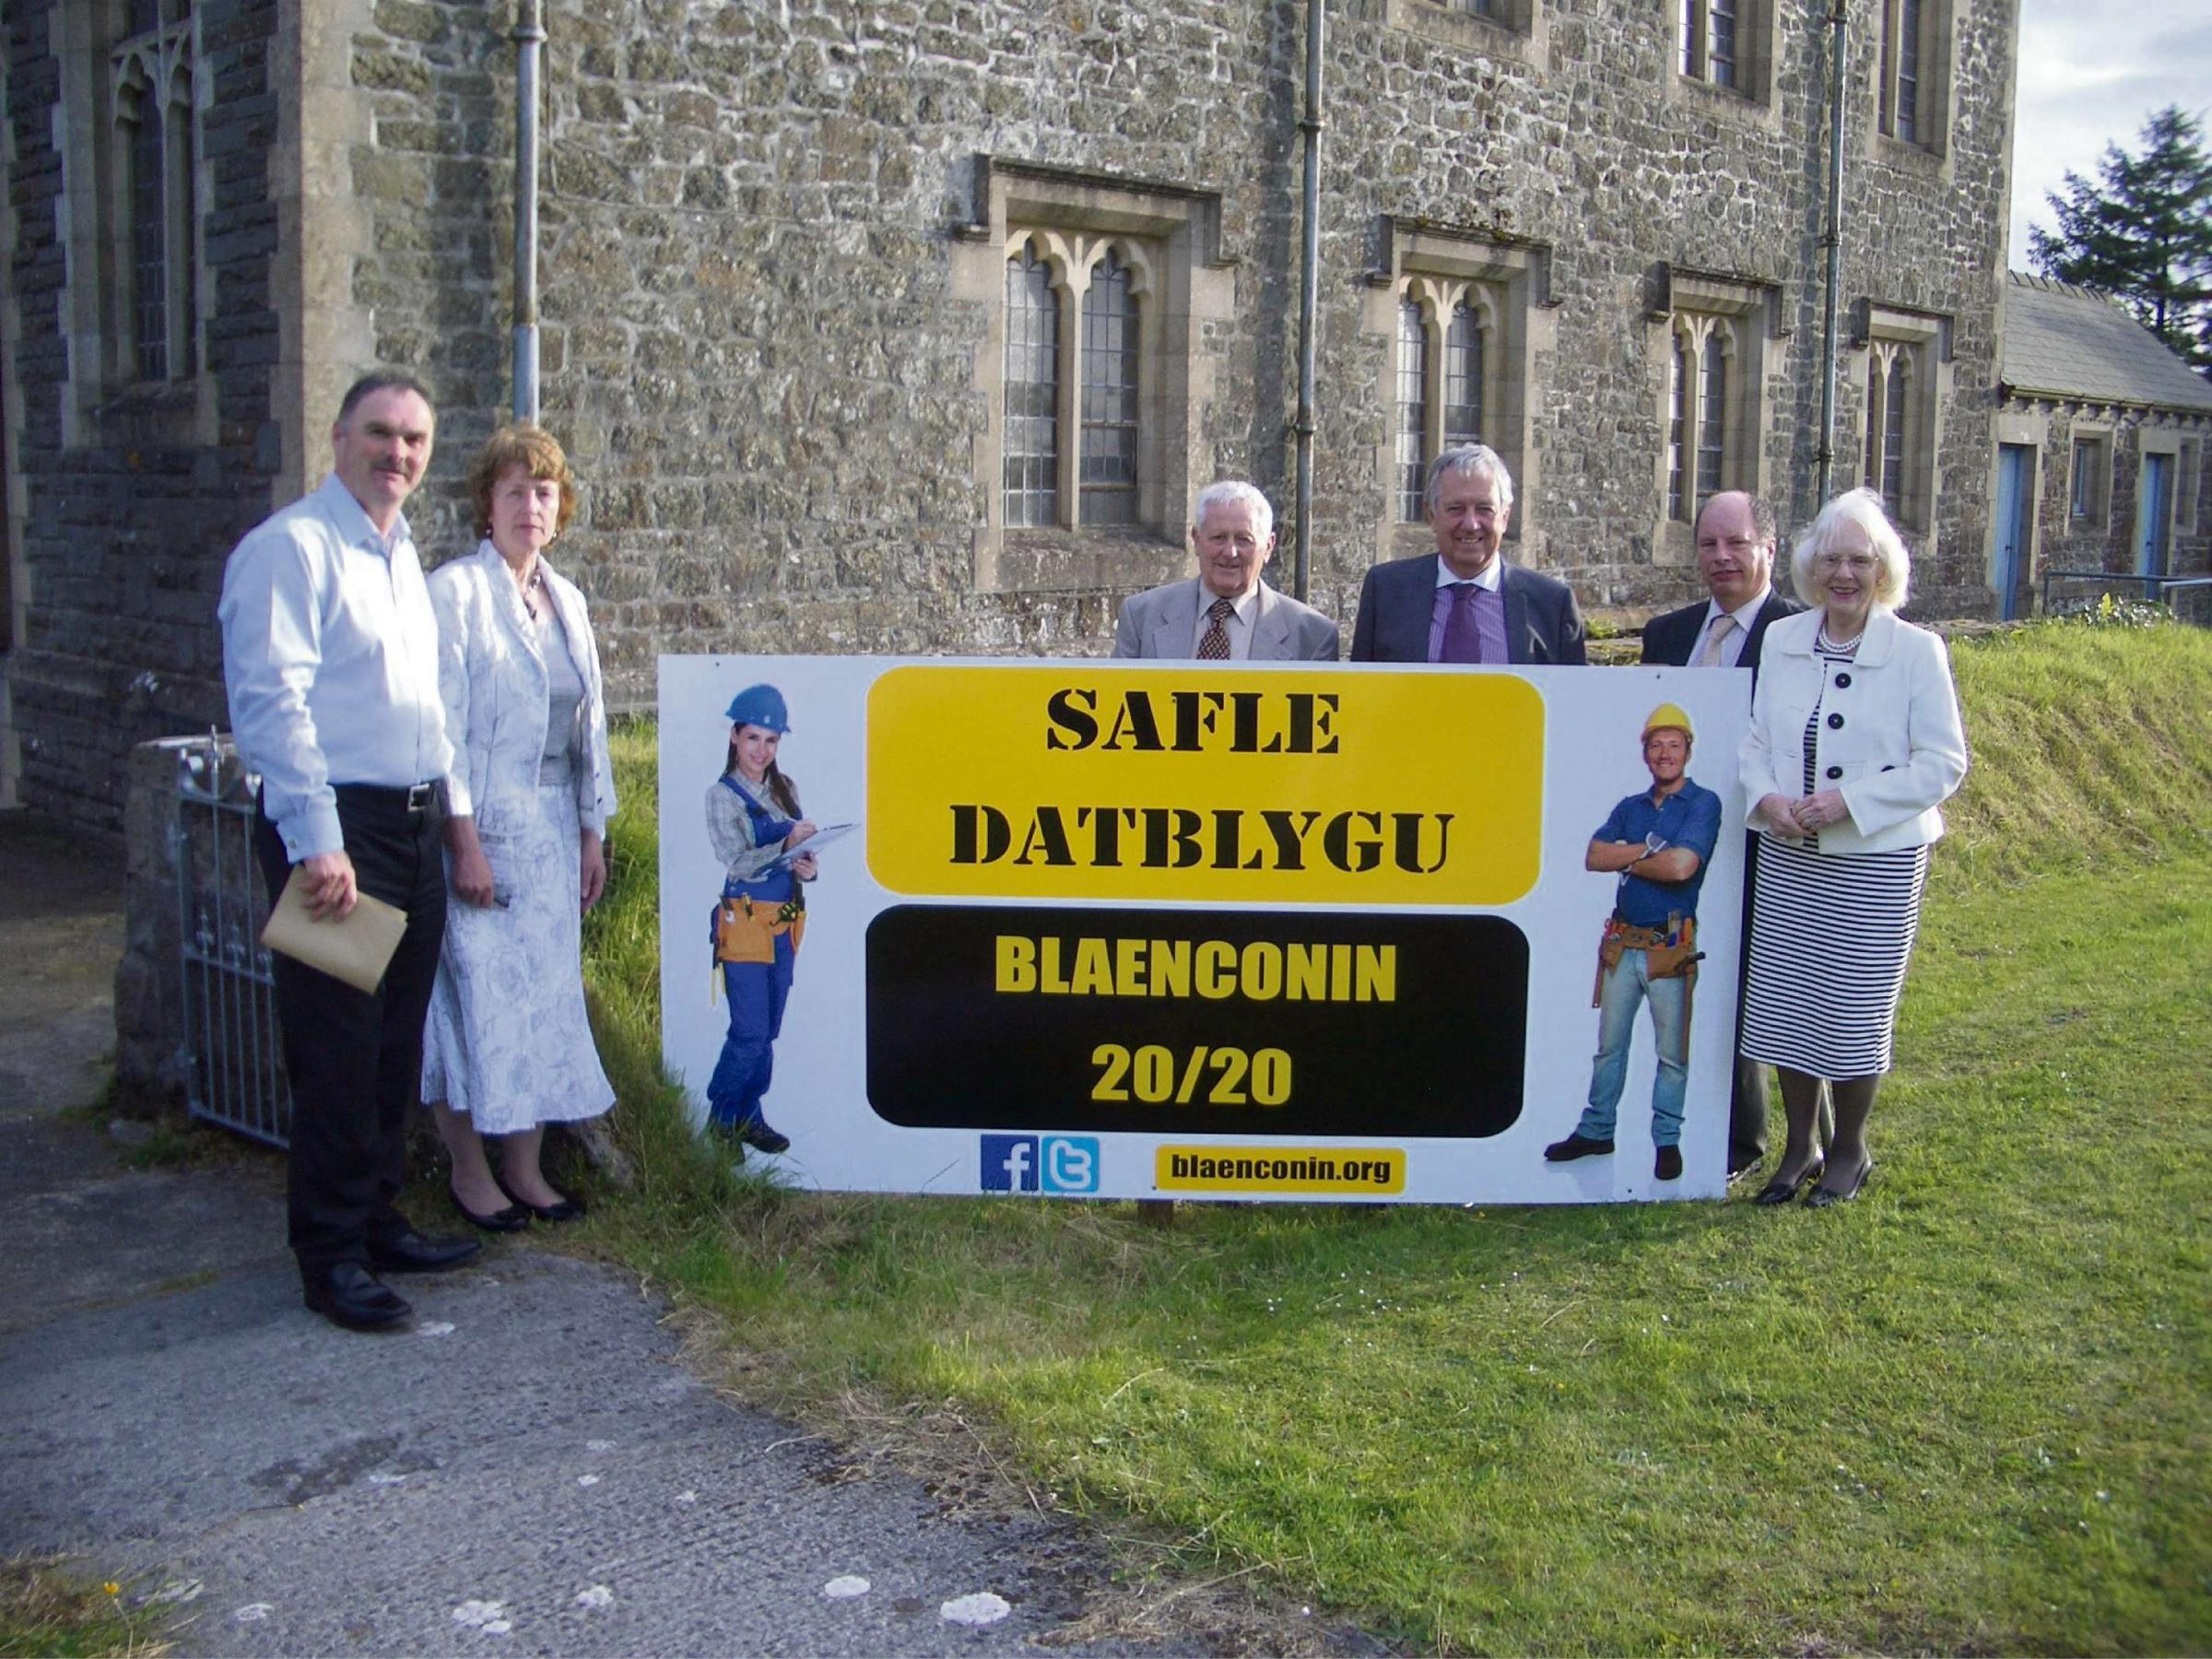 Revd Huw George (left) joins the directors of the new Canolfan Blaenconin and Canolfan Waldo project designed to support community activity in Llandysilio, Pembrokeshire. With Revd George, who will chair the new Community Interest Company, are (l –